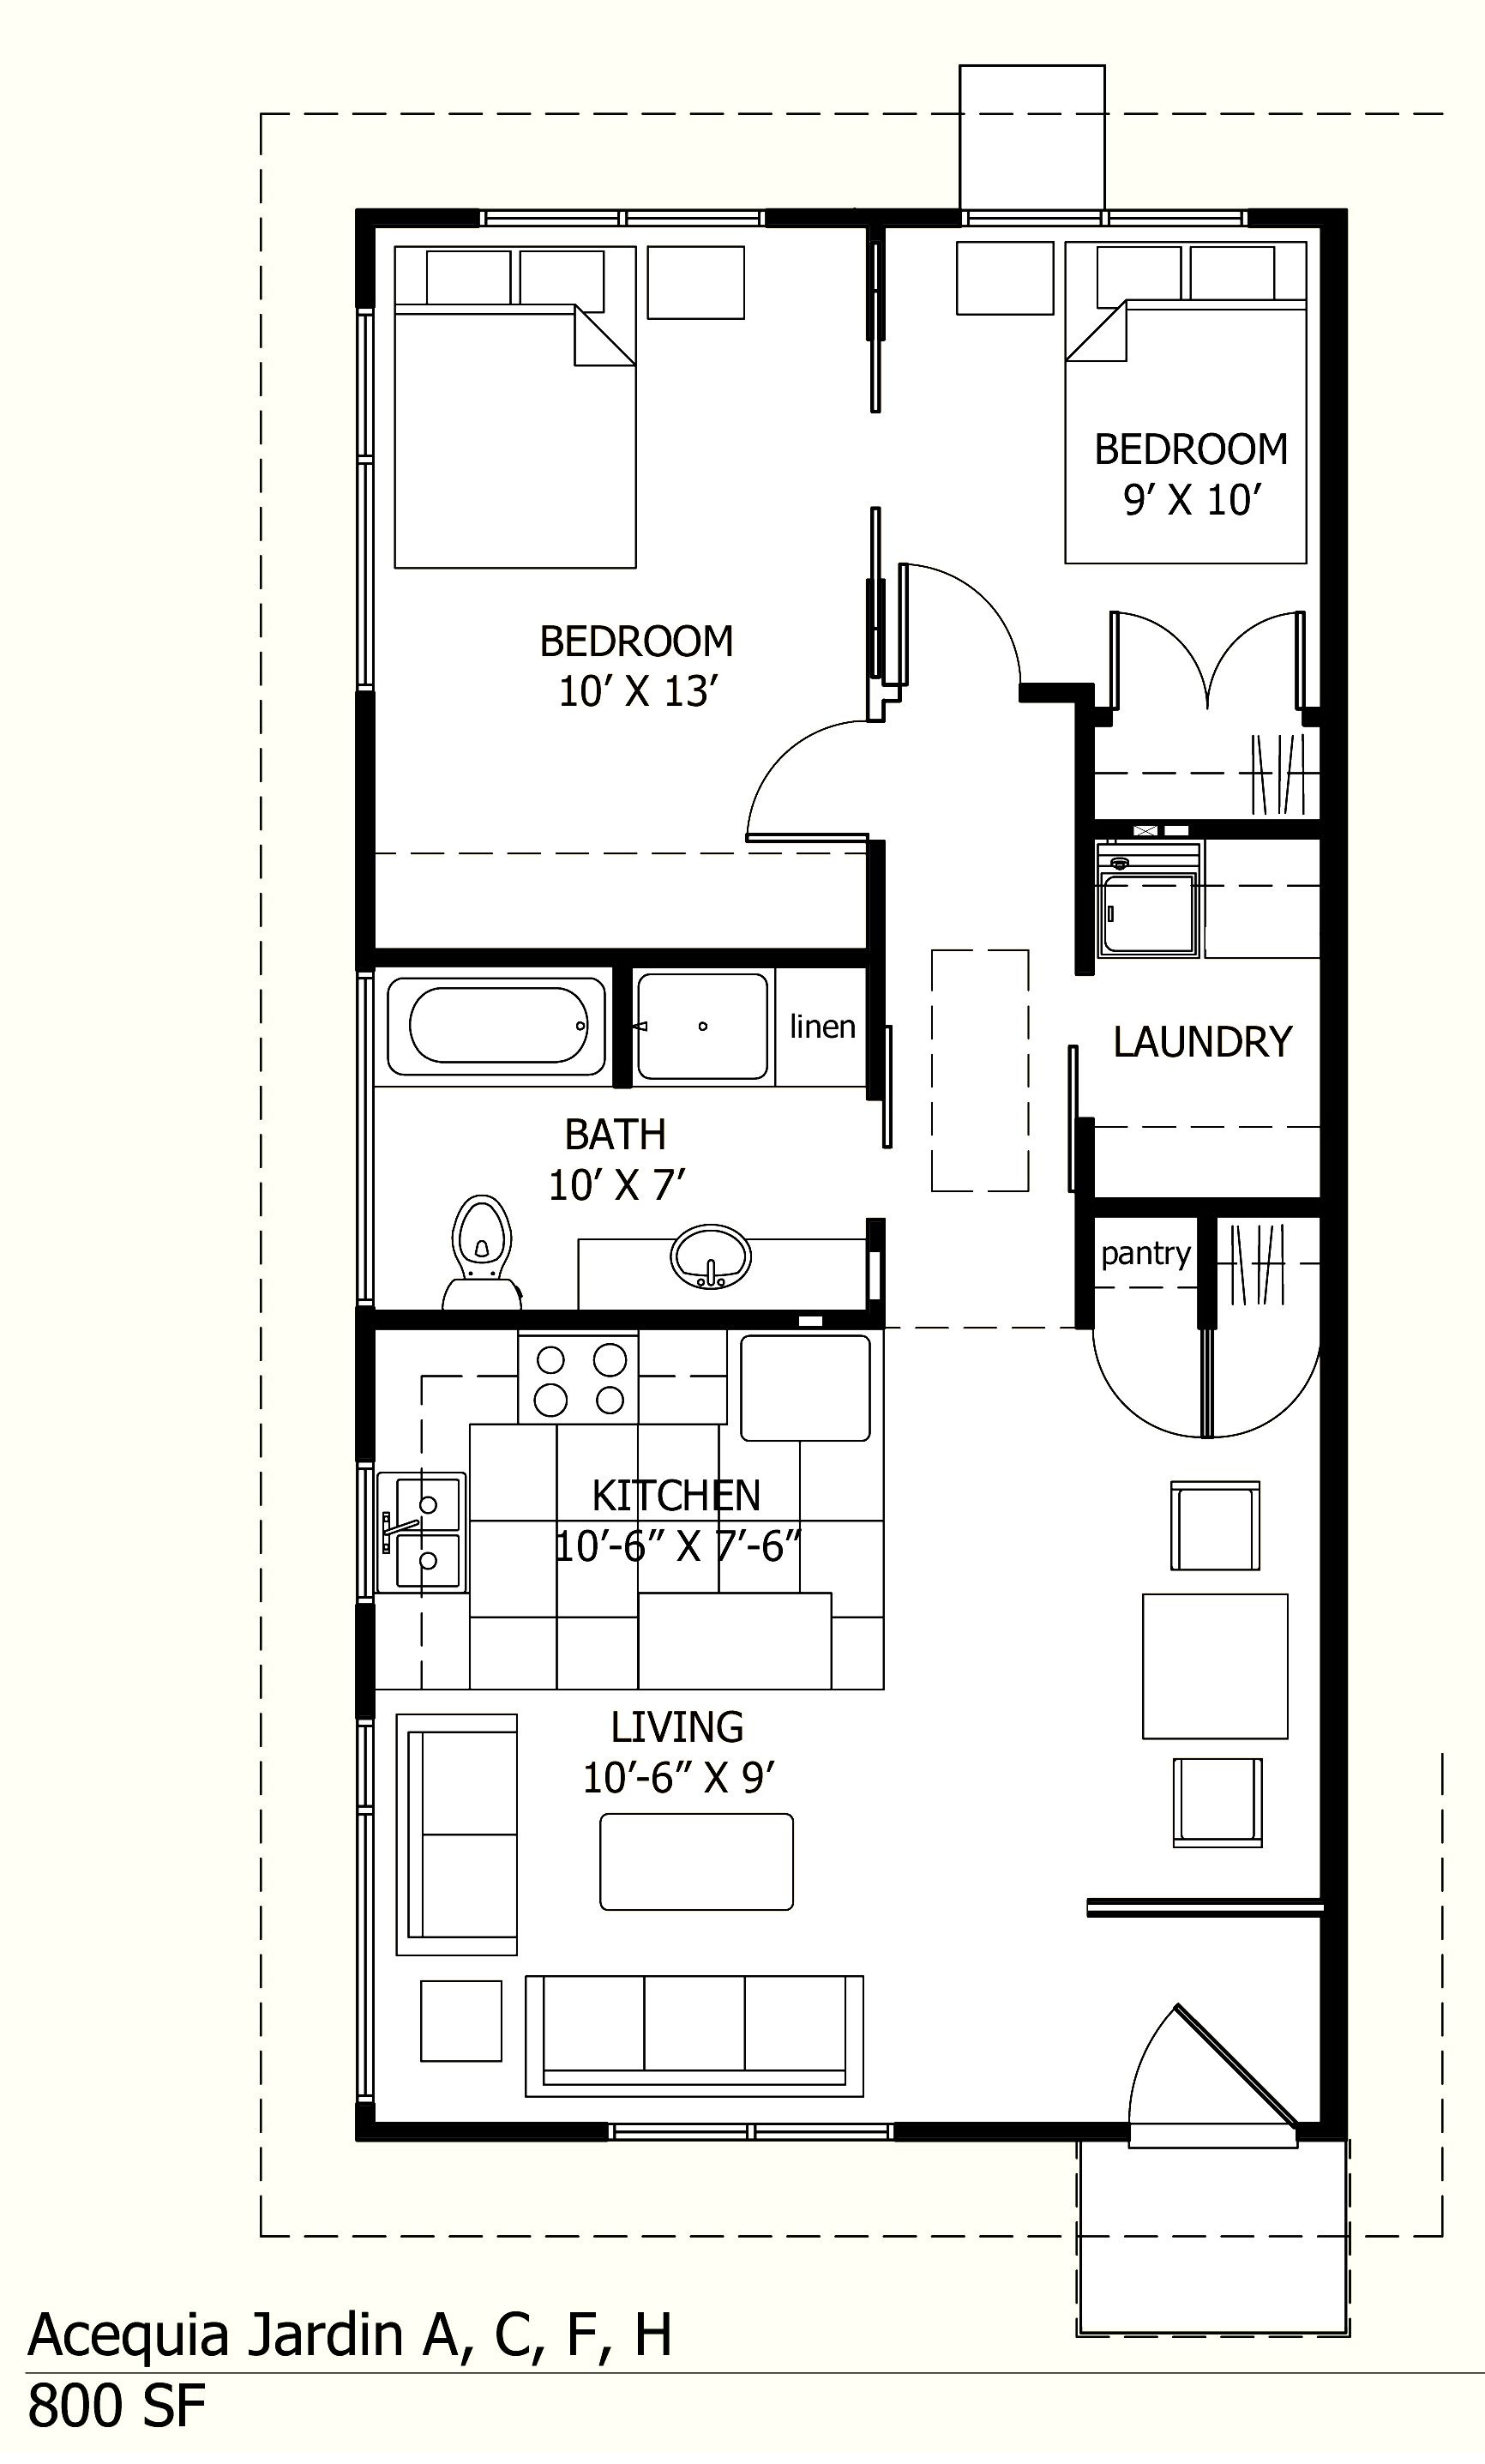 Small Modern House Plans Under 1000 Sq Ft Best Of 800 Sq Ft